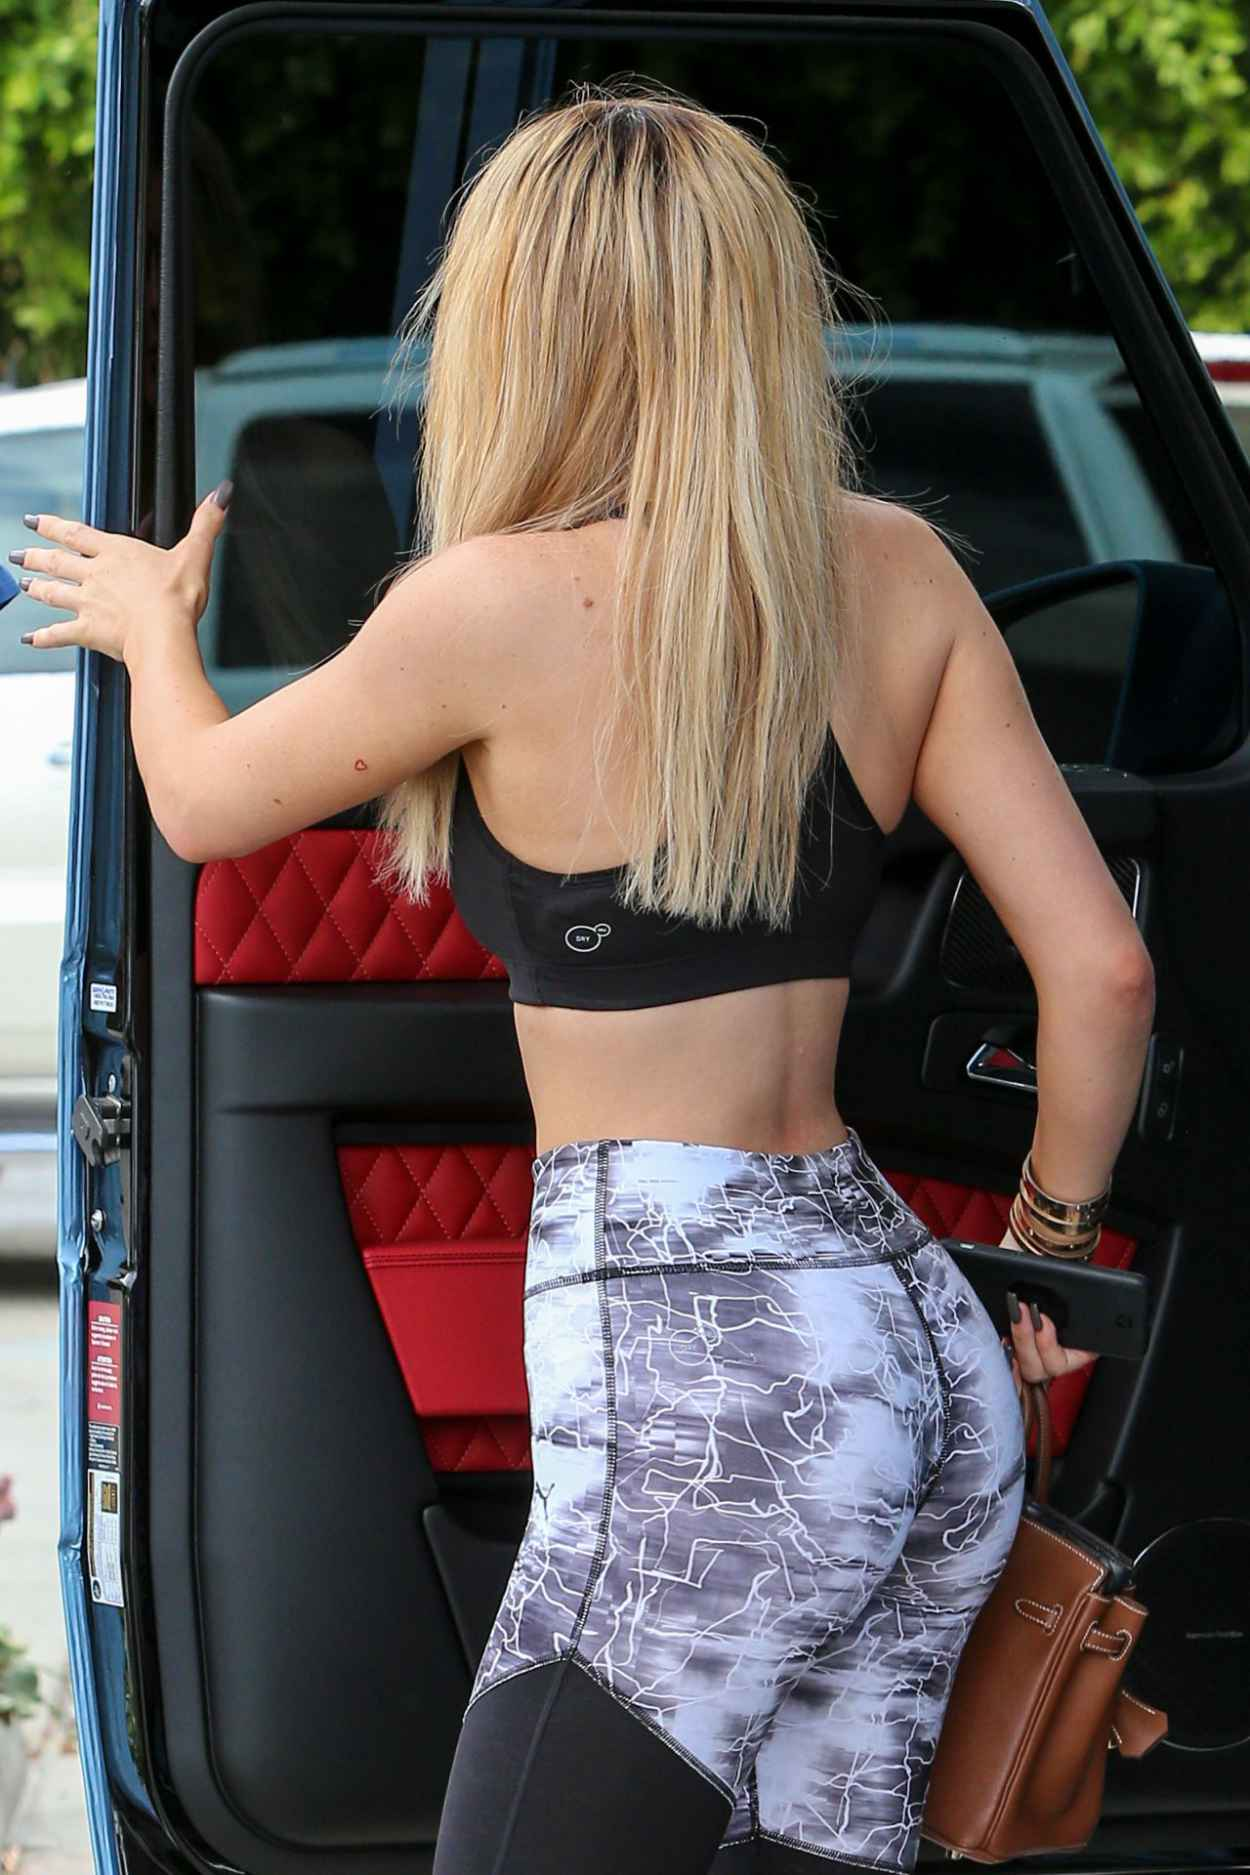 Kylie Jenner Booty in Tights at the Westfield Mall in Calabasas, September 2015-5